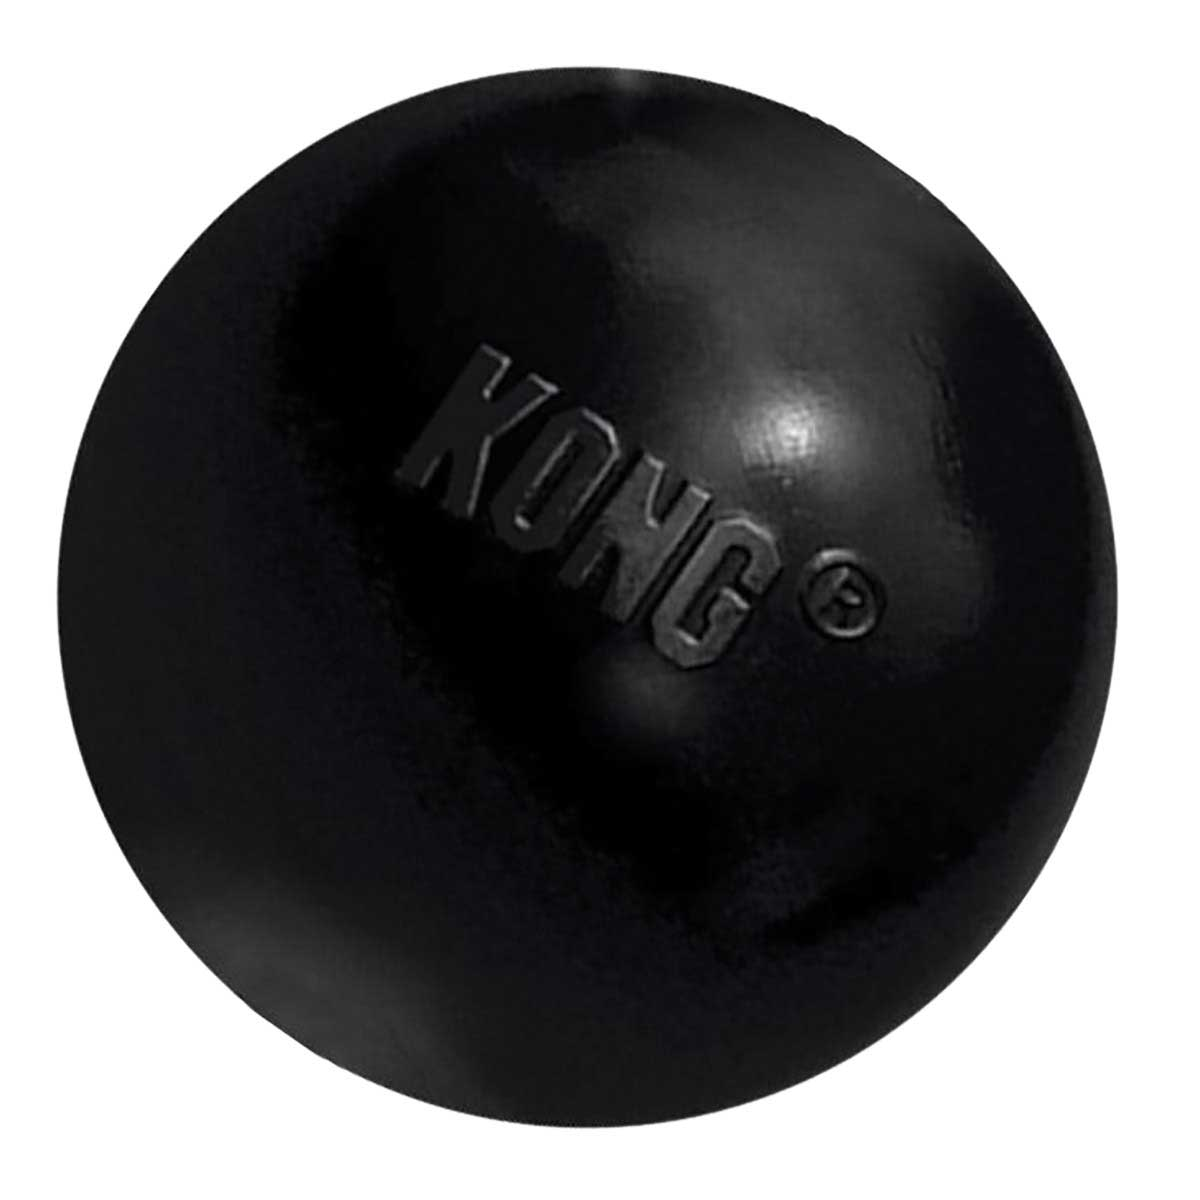 Small Black Extreme KONG Ball for Dogs